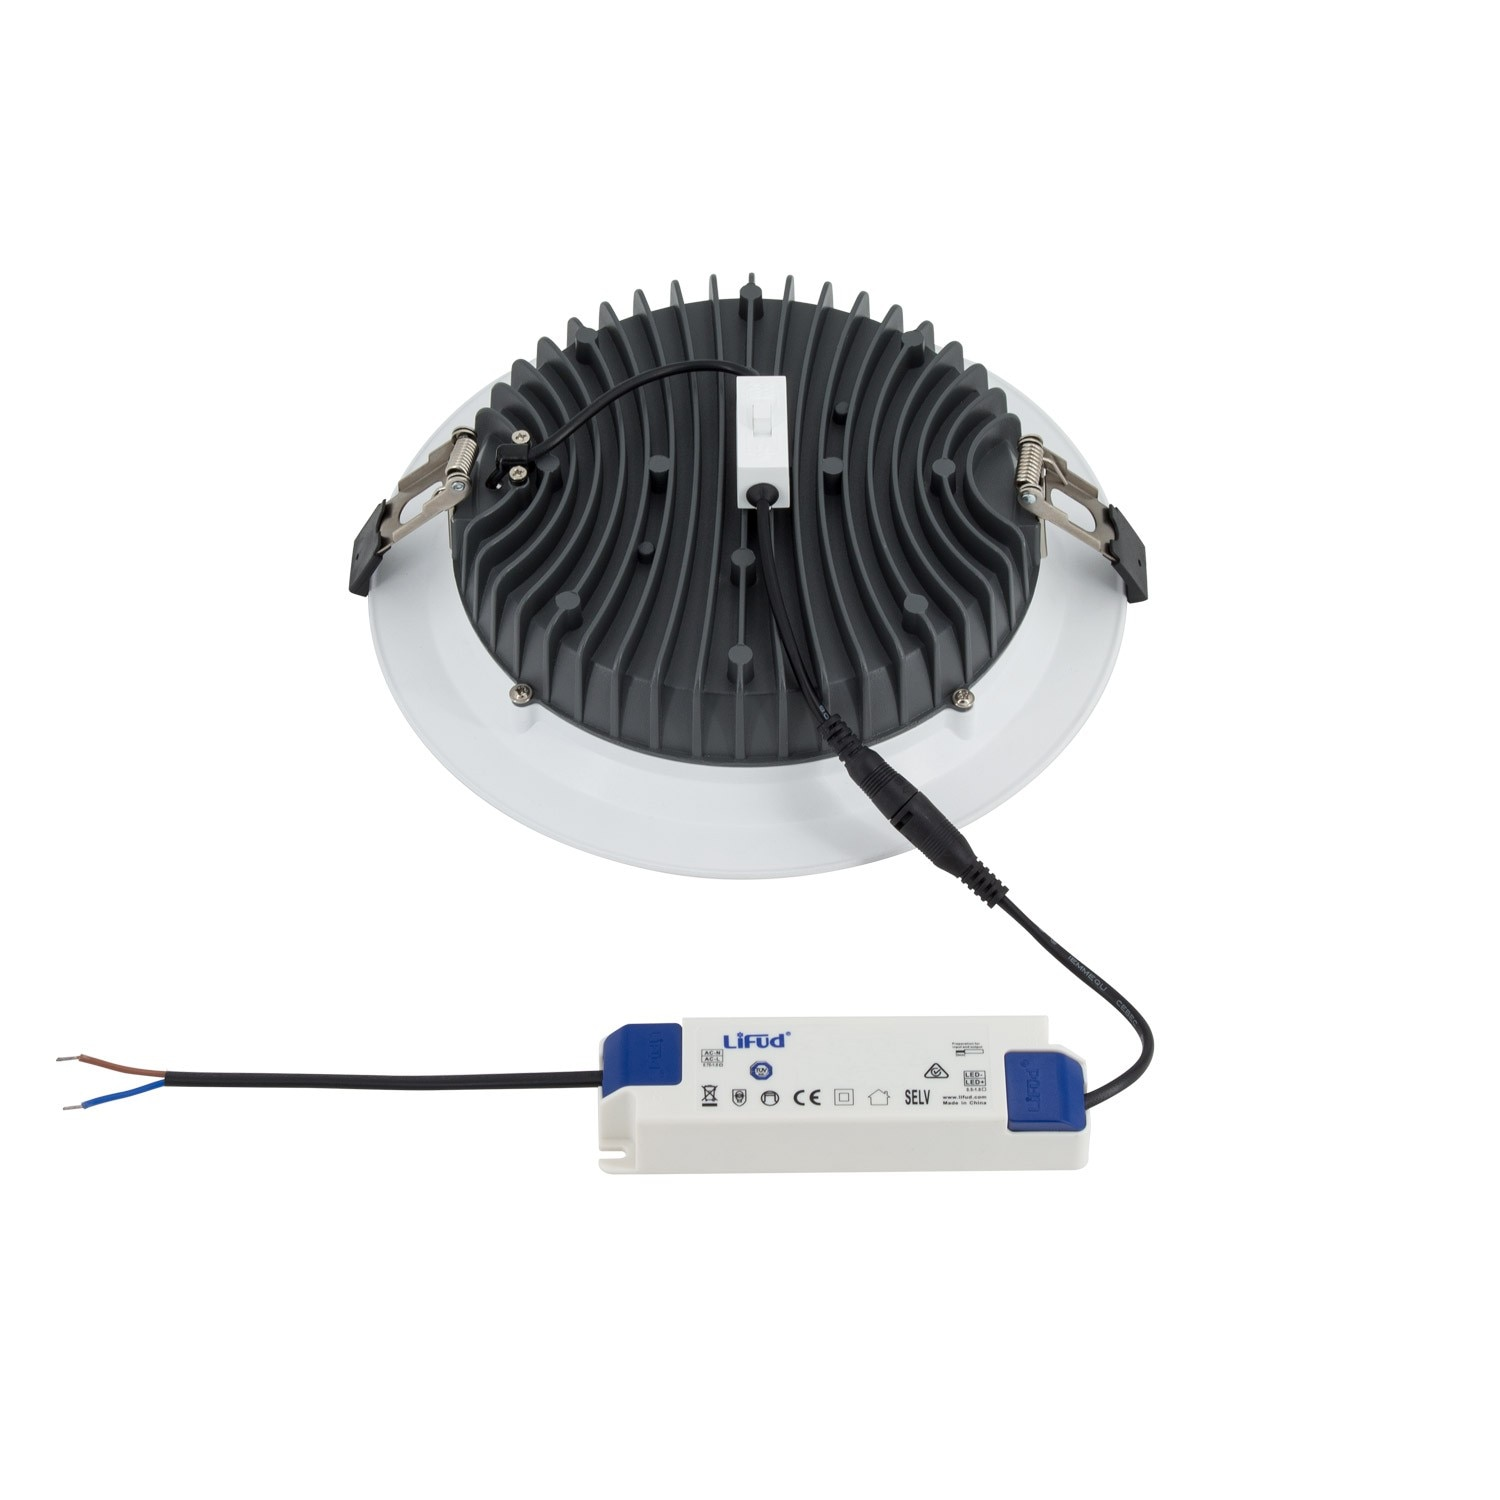 Slim 30w Led Downlight With Selectable Colour Temperature Lifud Wiring Circuit Downlights Downight T Color Seleccionable 20w